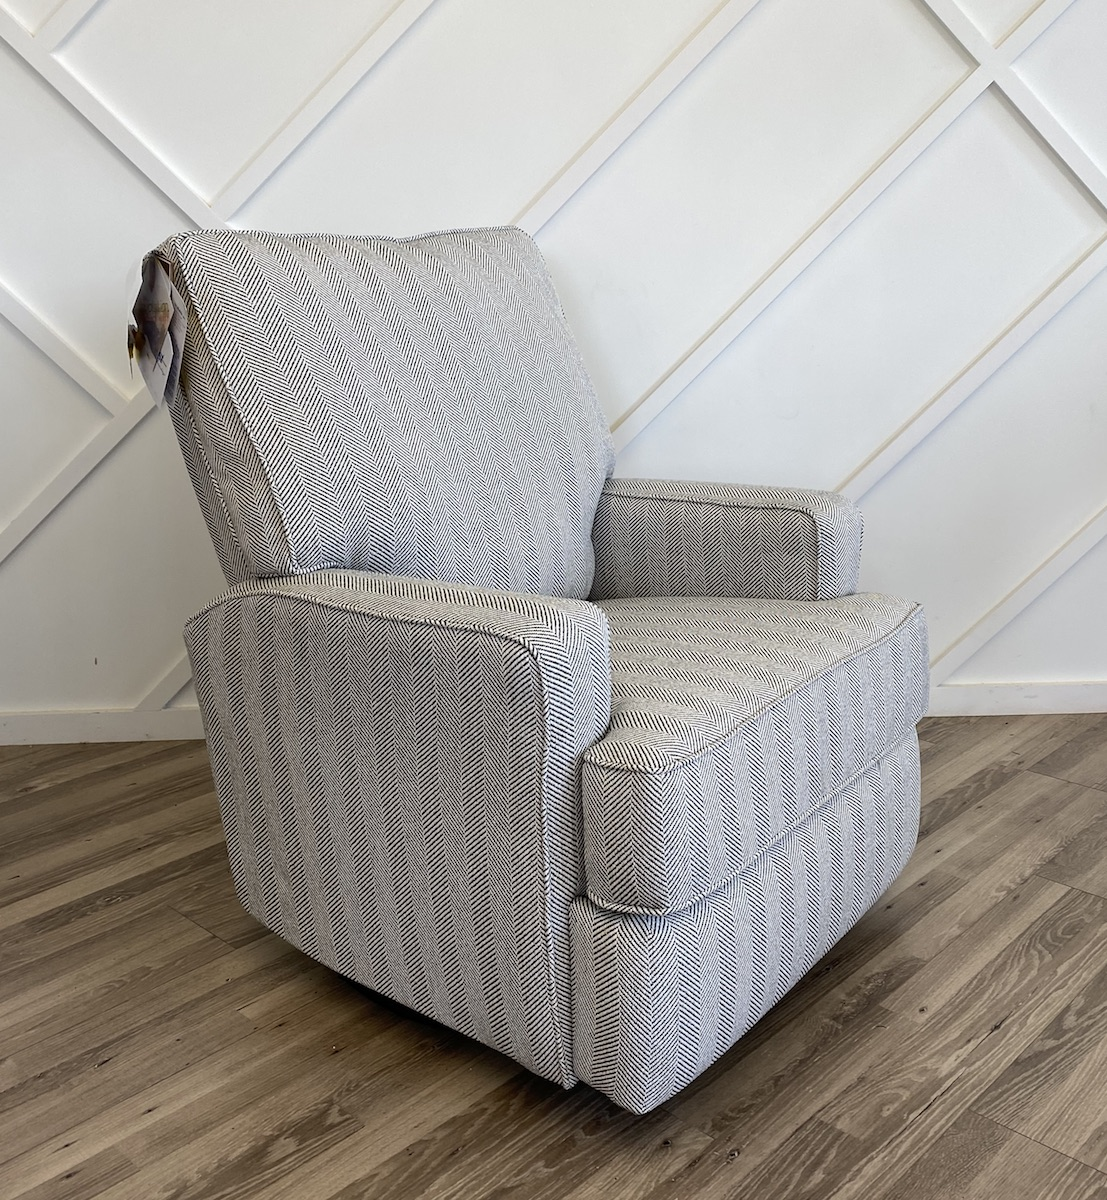 Best Chairs Kersey Swivel Glider Recliner in Salt & Pepper